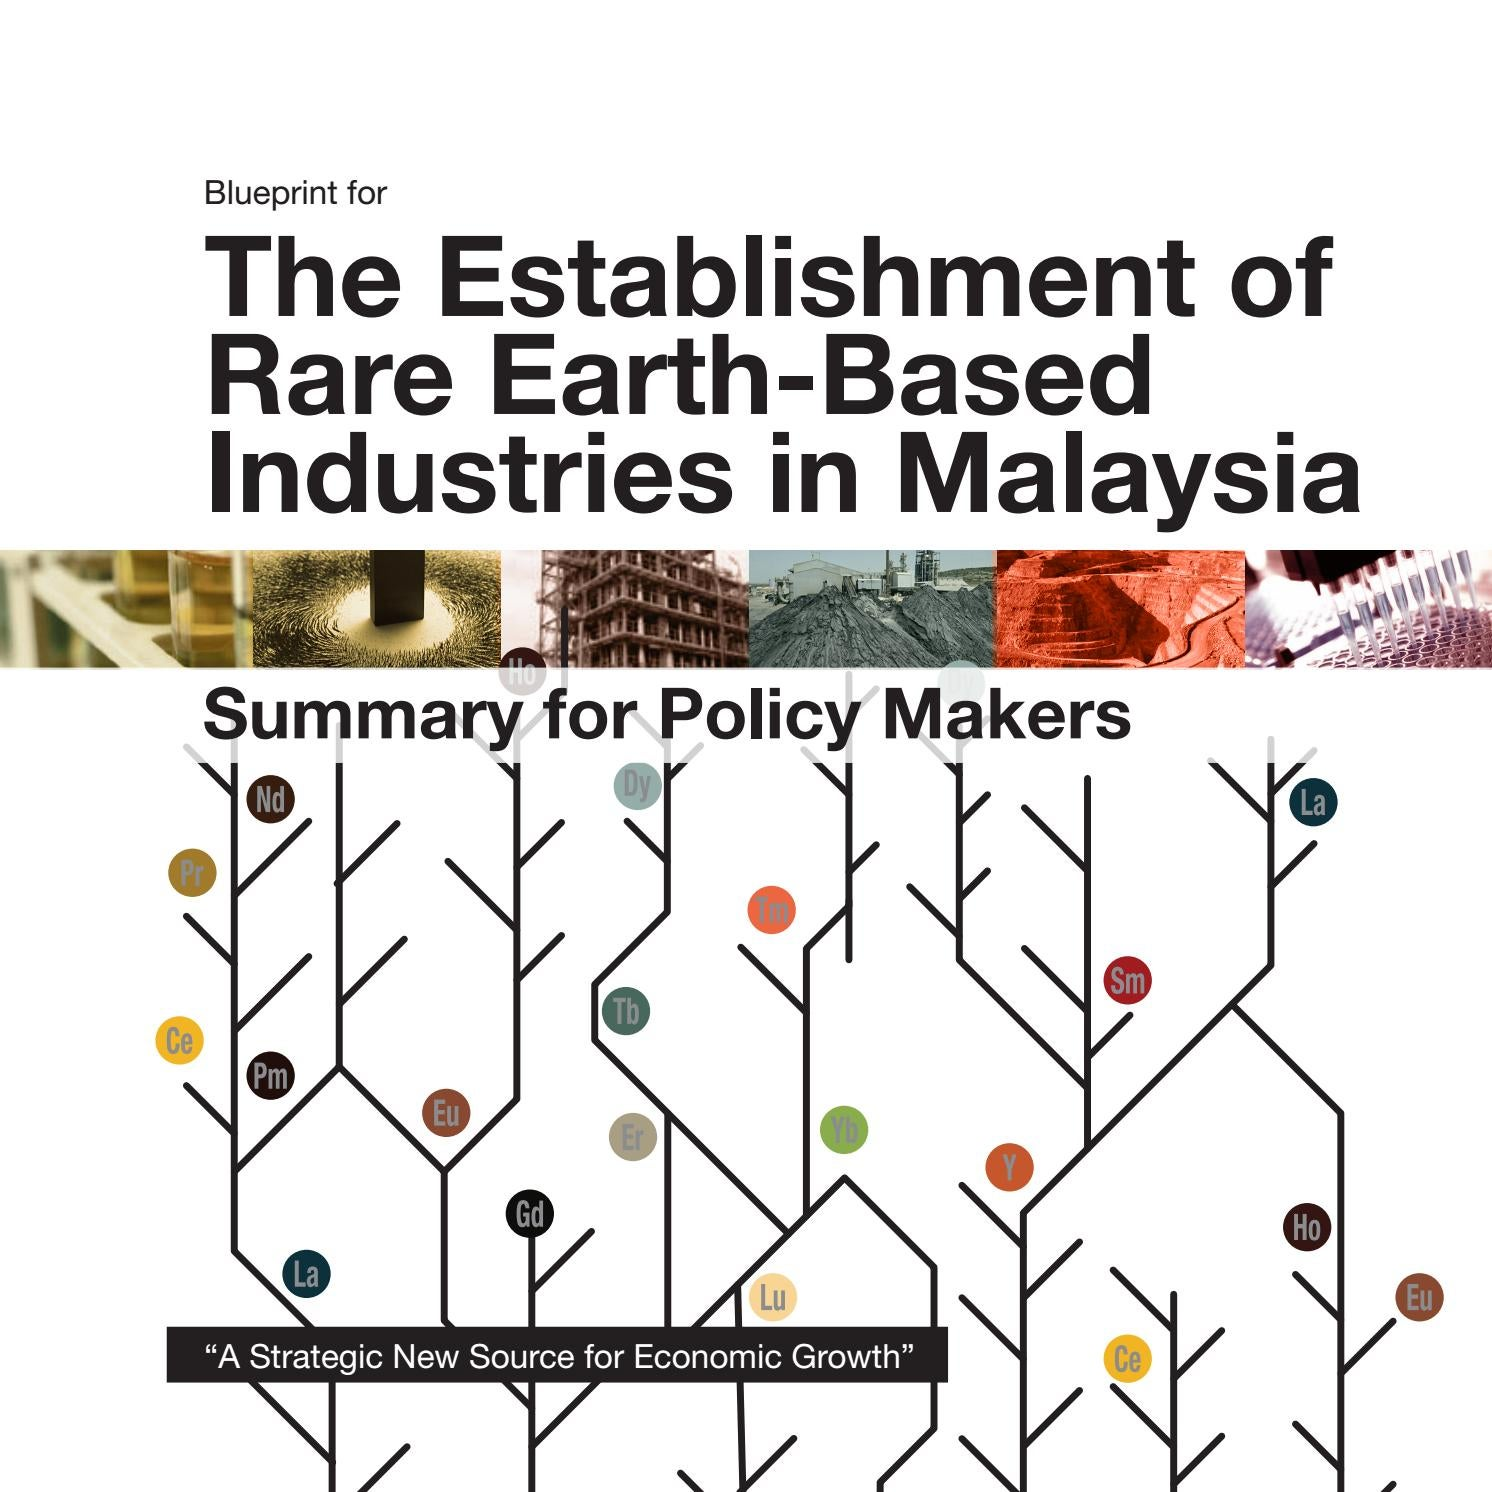 Blueprint for the establishment of rare earth based industries in blueprint for the establishment of rare earth based industries in malaysia summary by academy of sciences malaysia issuu malvernweather Images